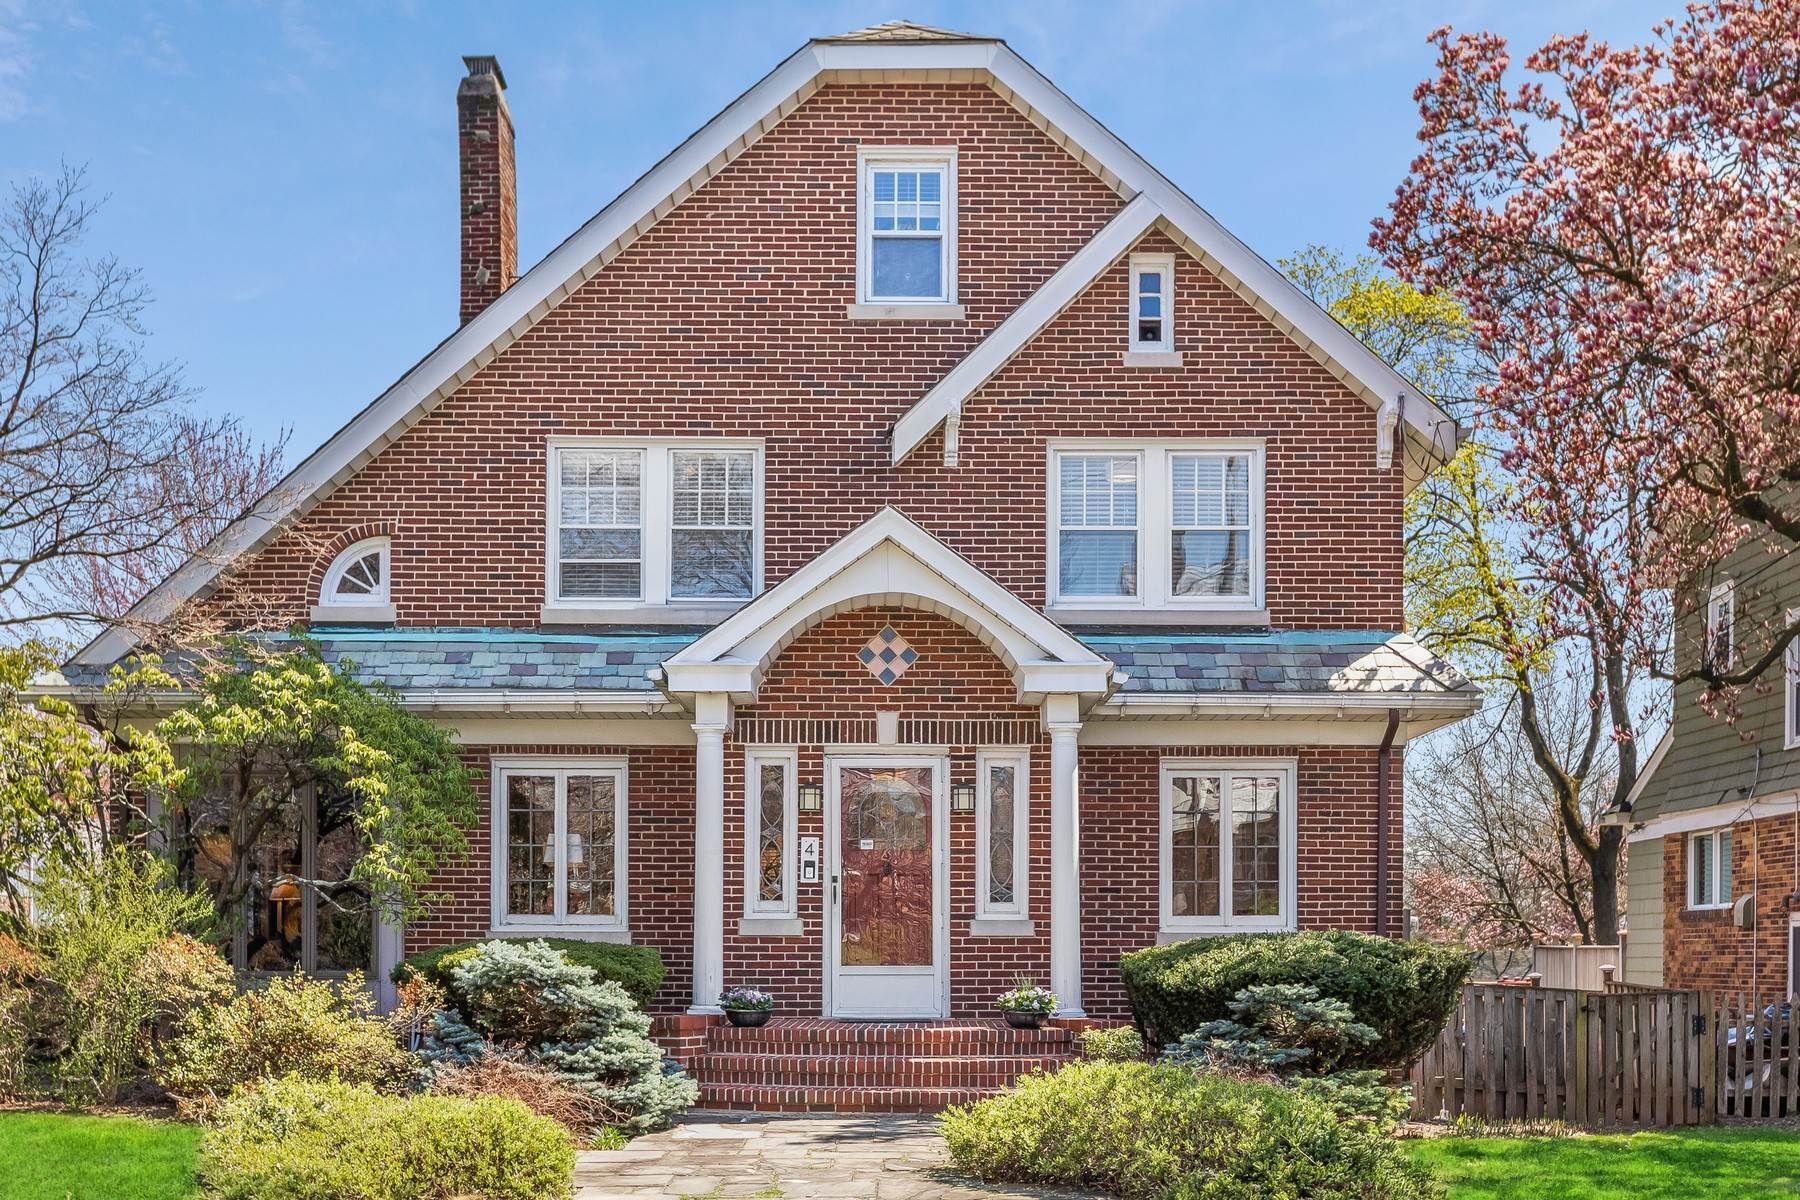 Single Family Homes for Sale at College Hill Colonial 4 Wellesley Road Maplewood, New Jersey 07040 United States